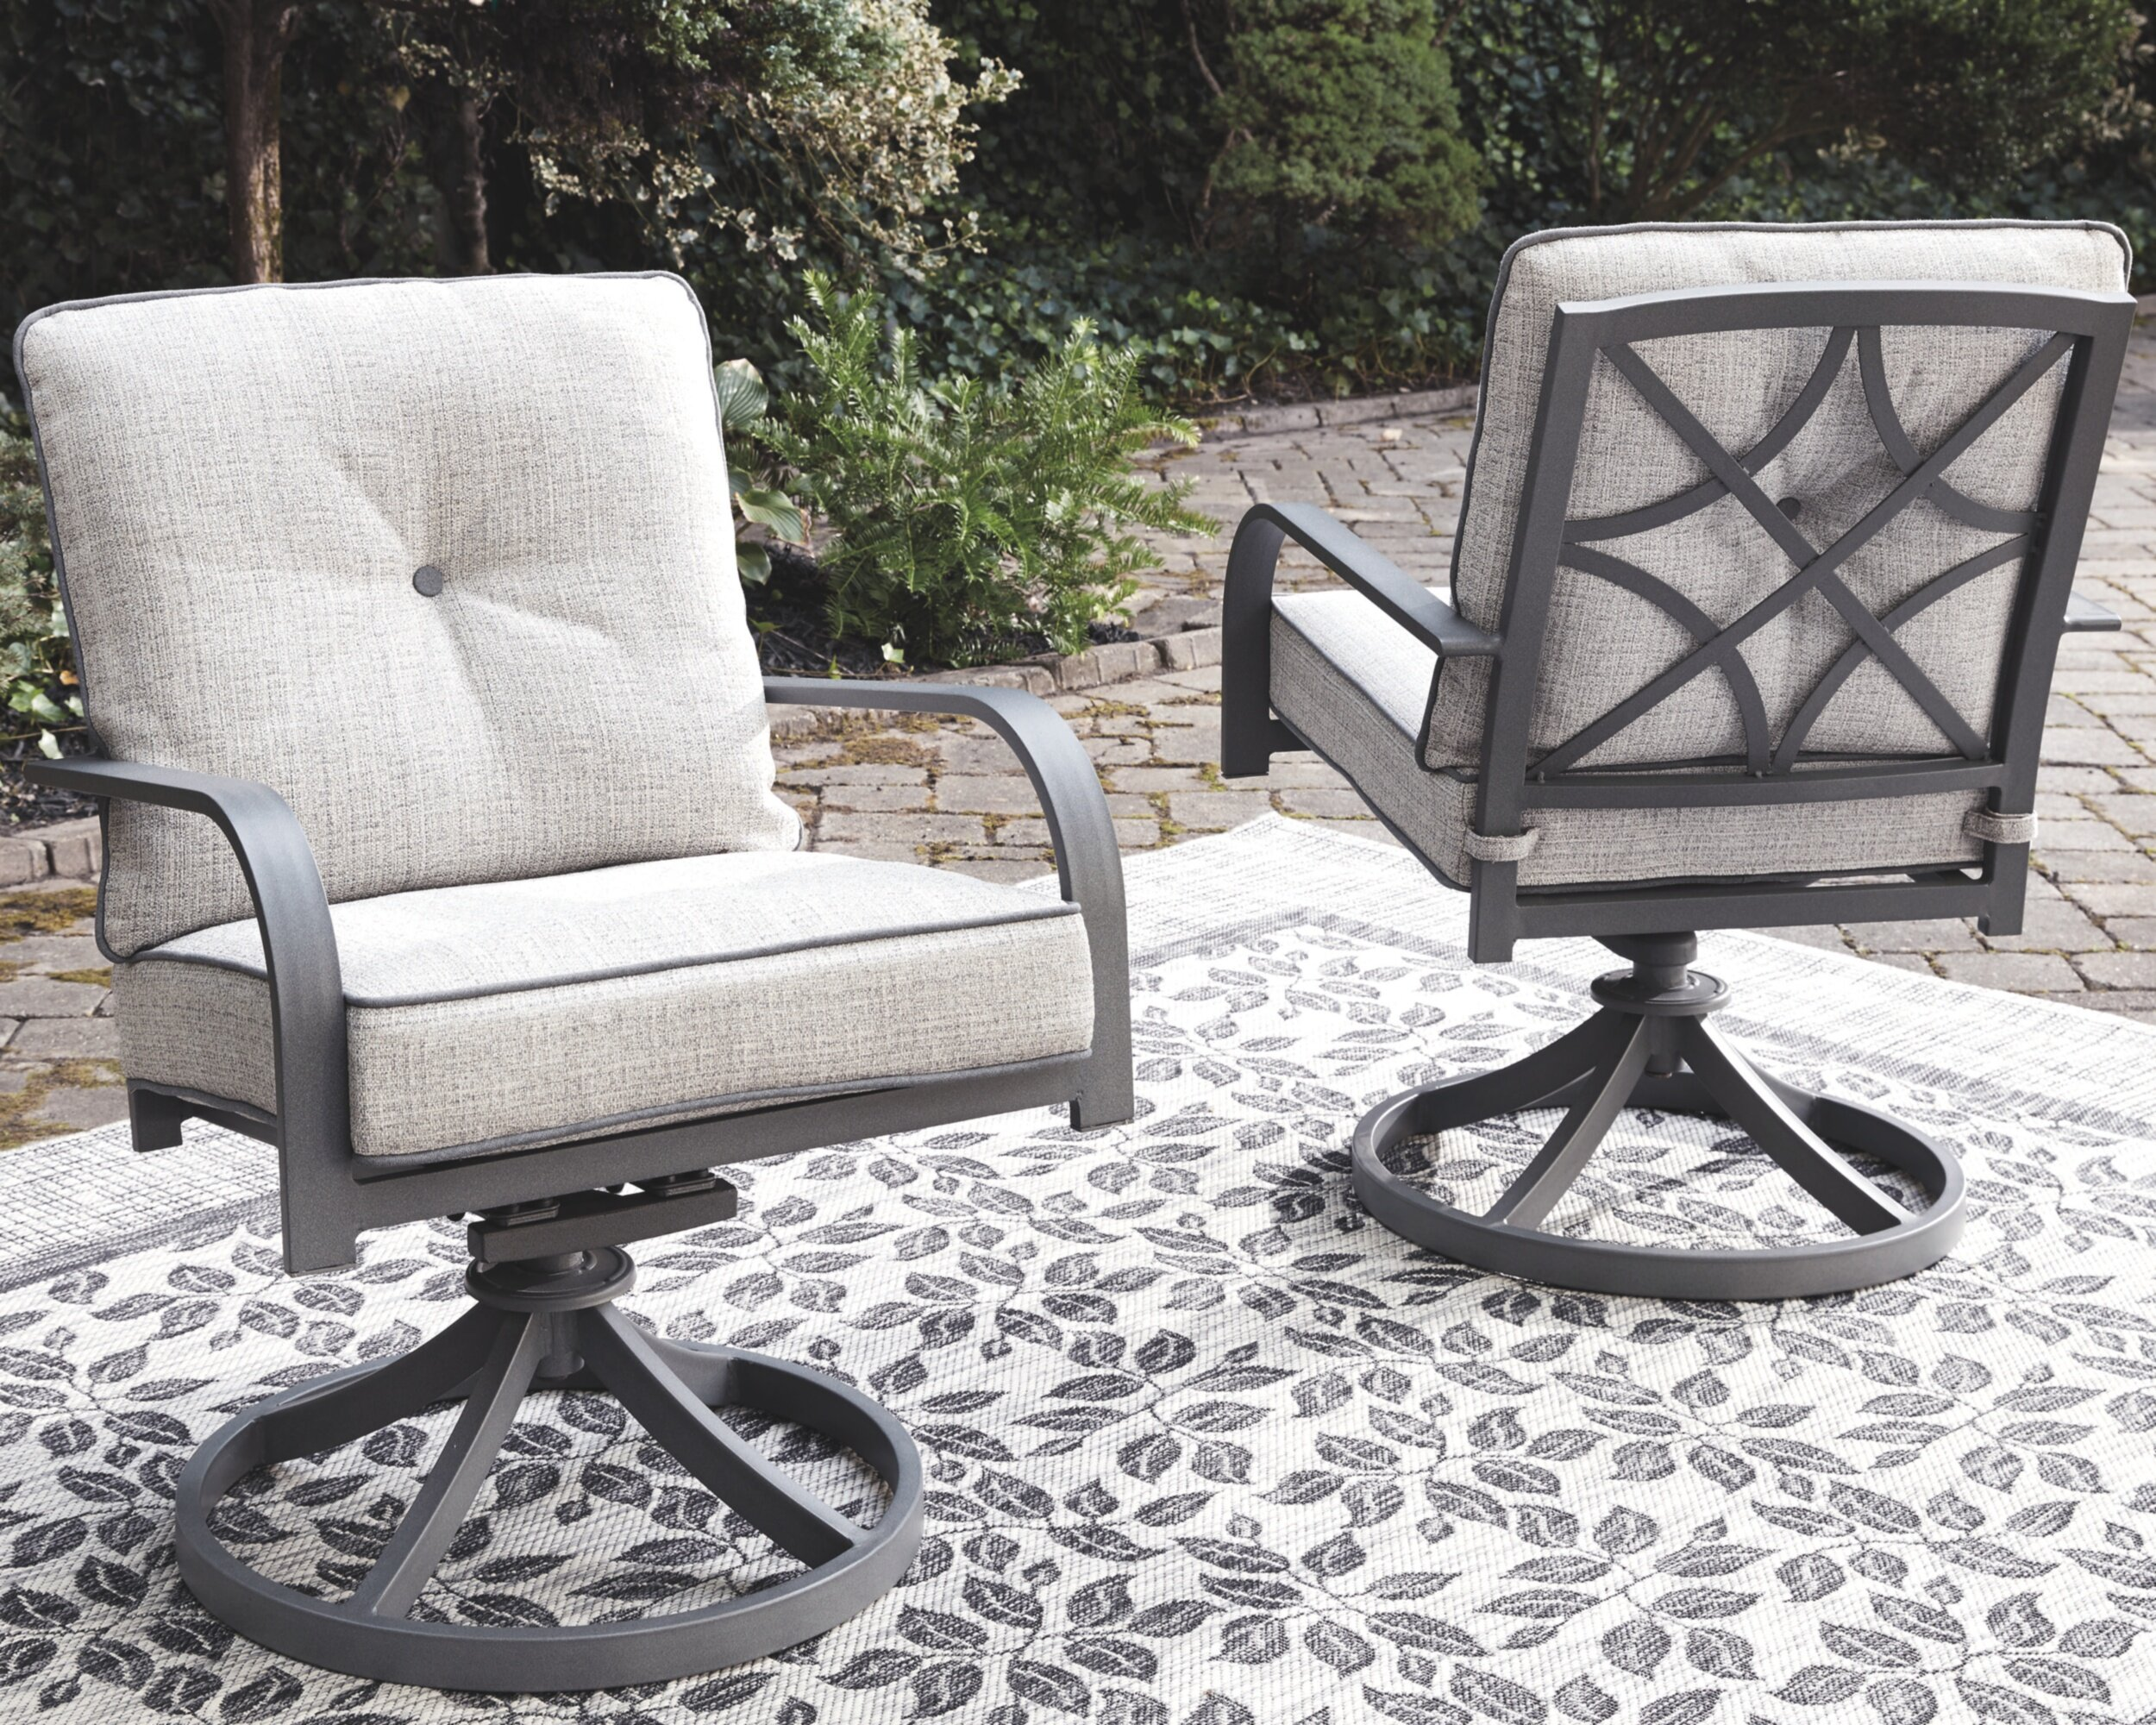 Wondrous Anguiano Swivel Patio Chair With Cushions Cjindustries Chair Design For Home Cjindustriesco